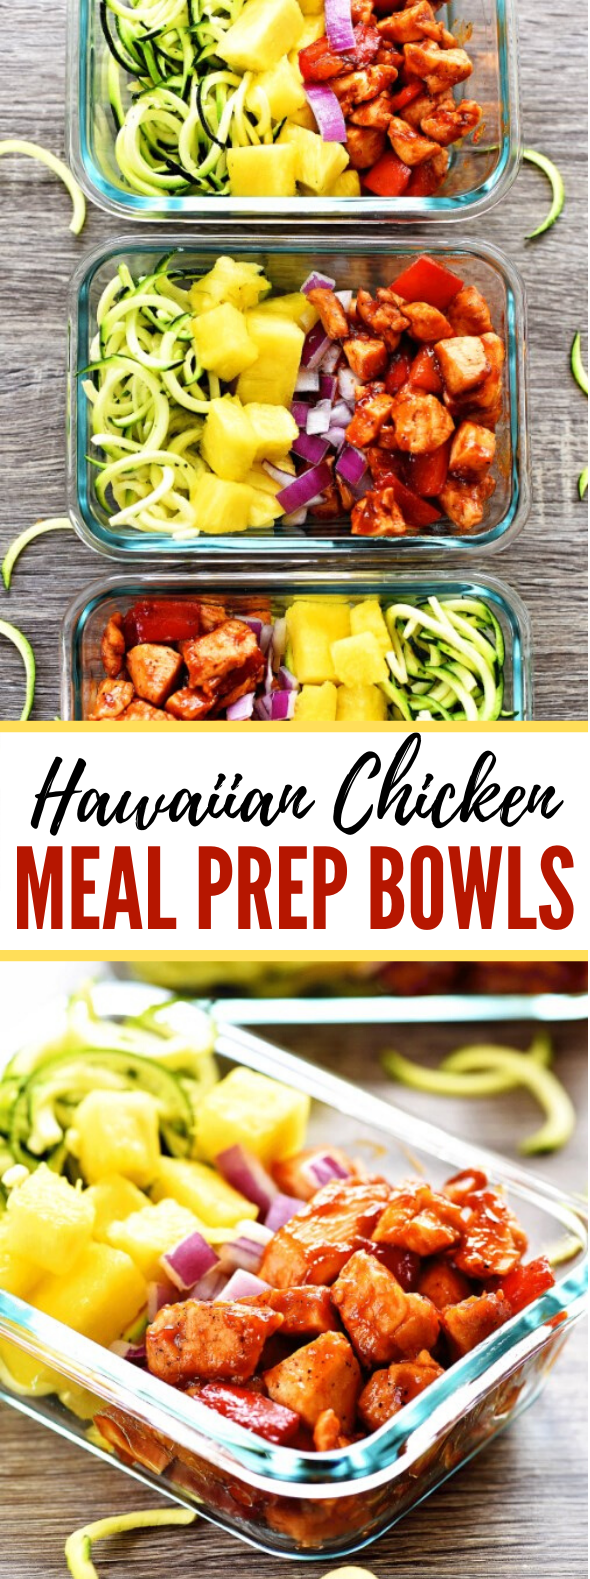 Hawaiian Chicken Meal Prep Bowls #lunch #dinner